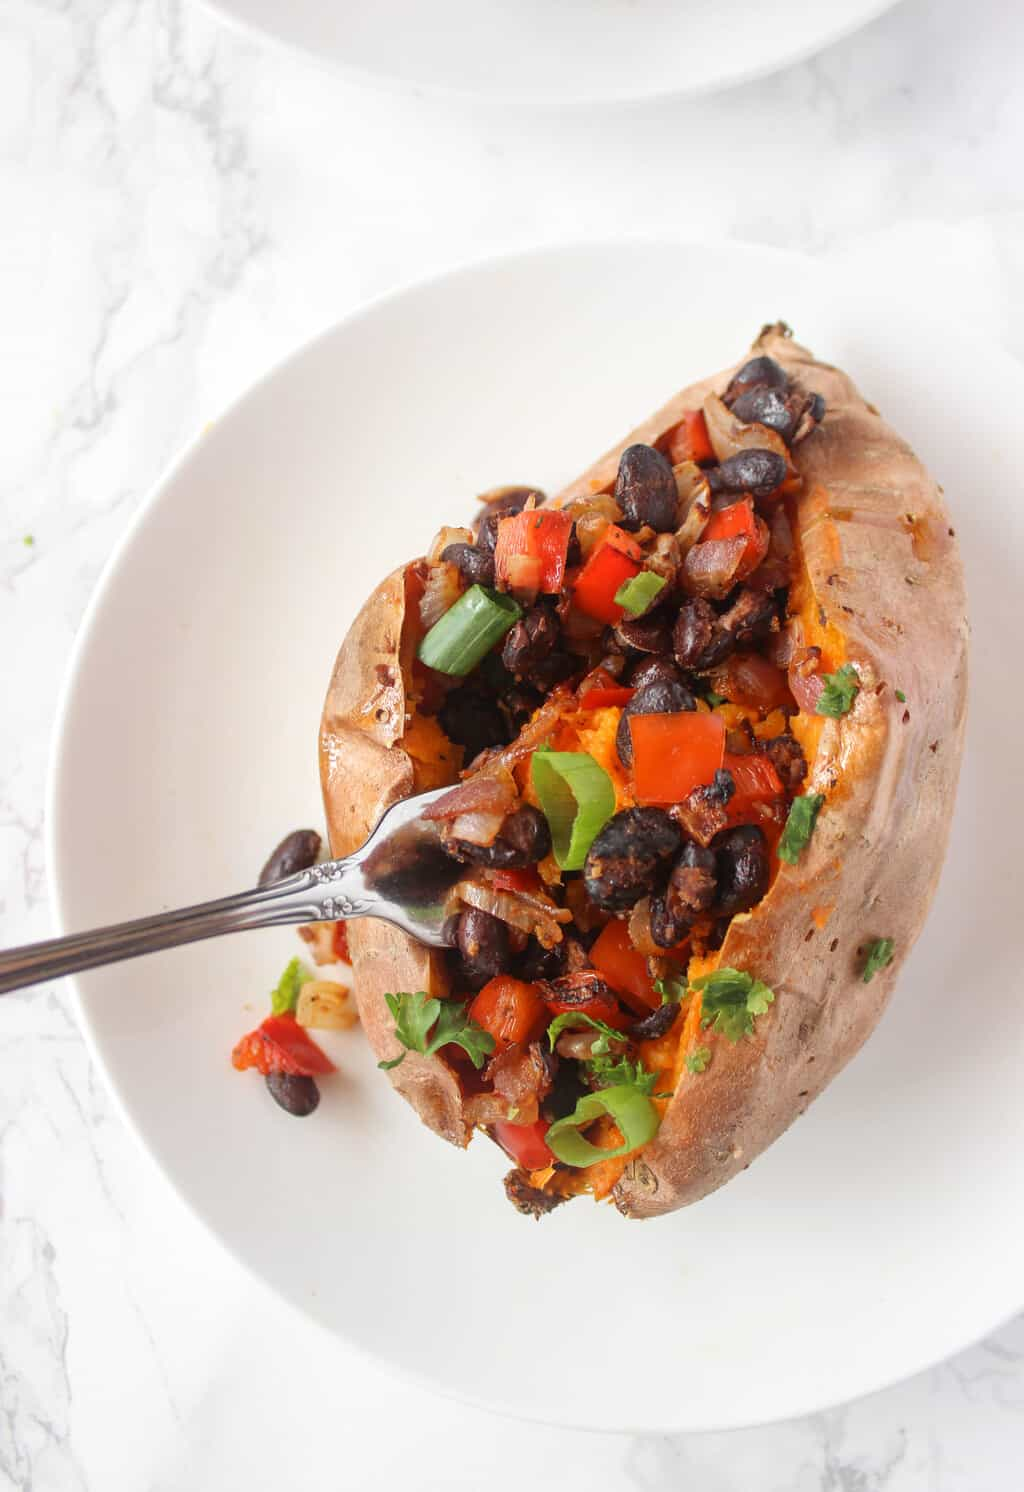 10 simple, healthy Mexican recipes that are DELICIOUS like these Mexican Stuffed Sweet Potatoes